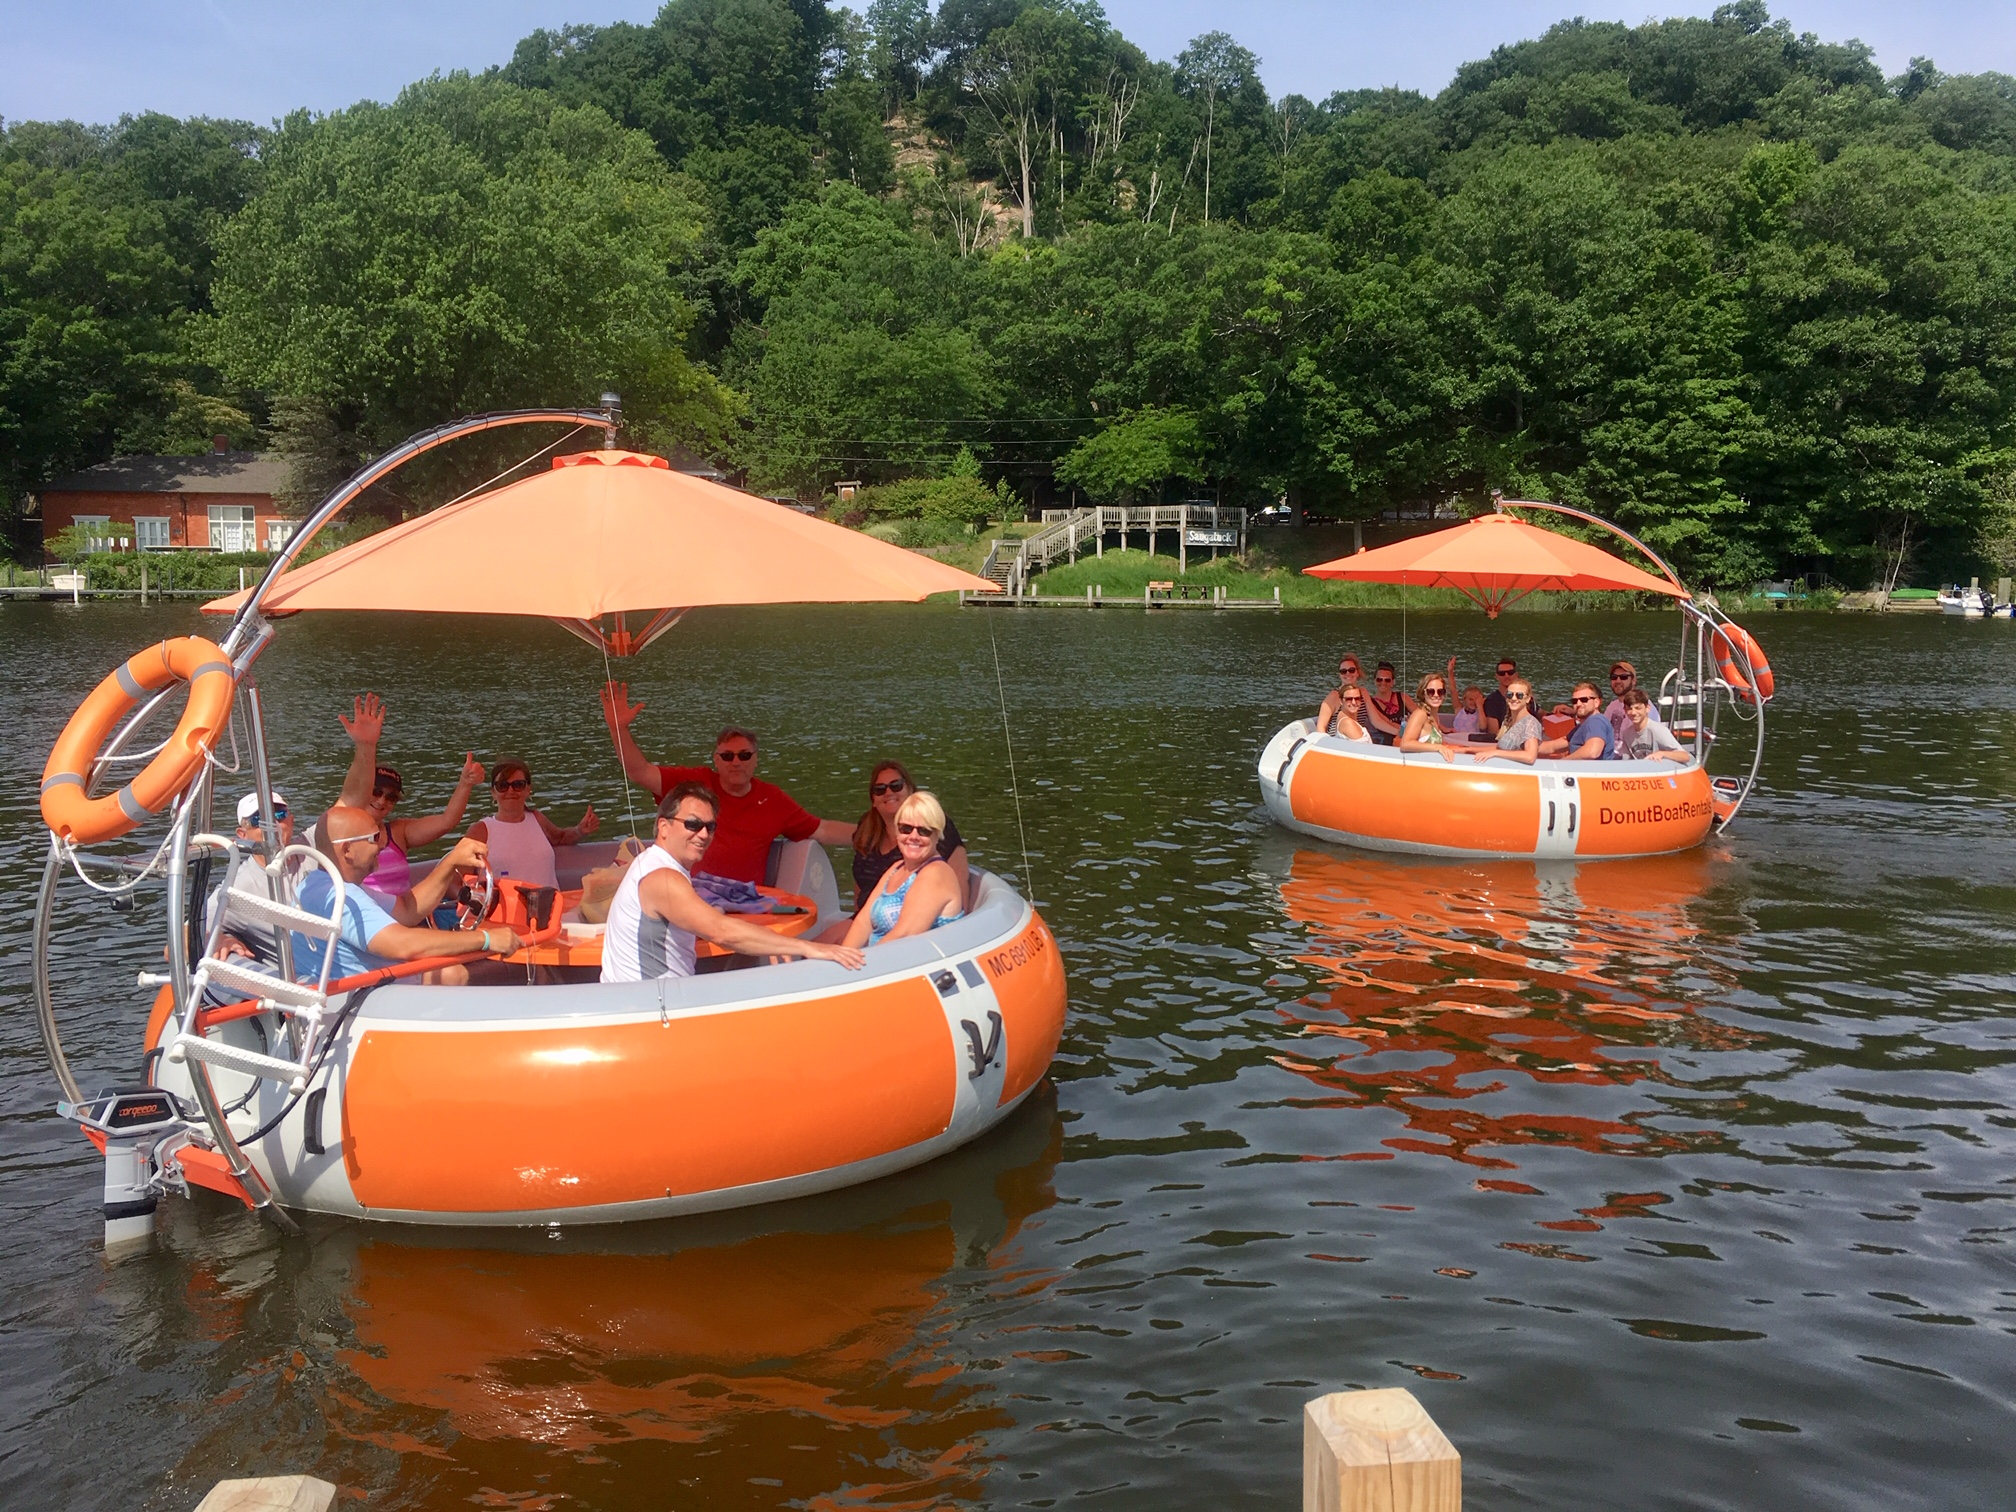 Donut Boats seat up to 10 people and are pet friendly